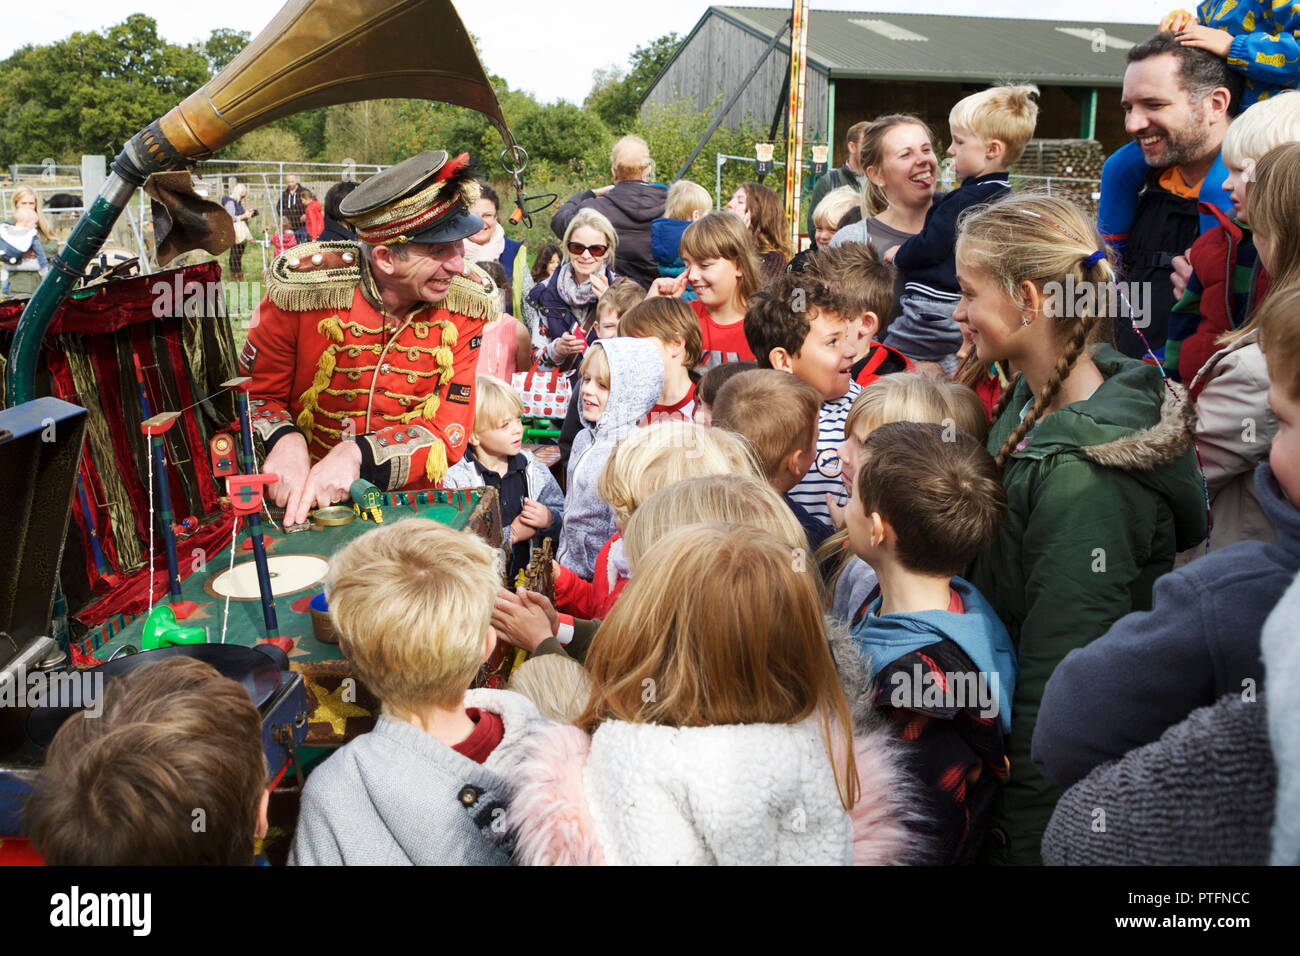 Flea circus and childrens entertainer, at Forty Hall Farm, north London. - Stock Image